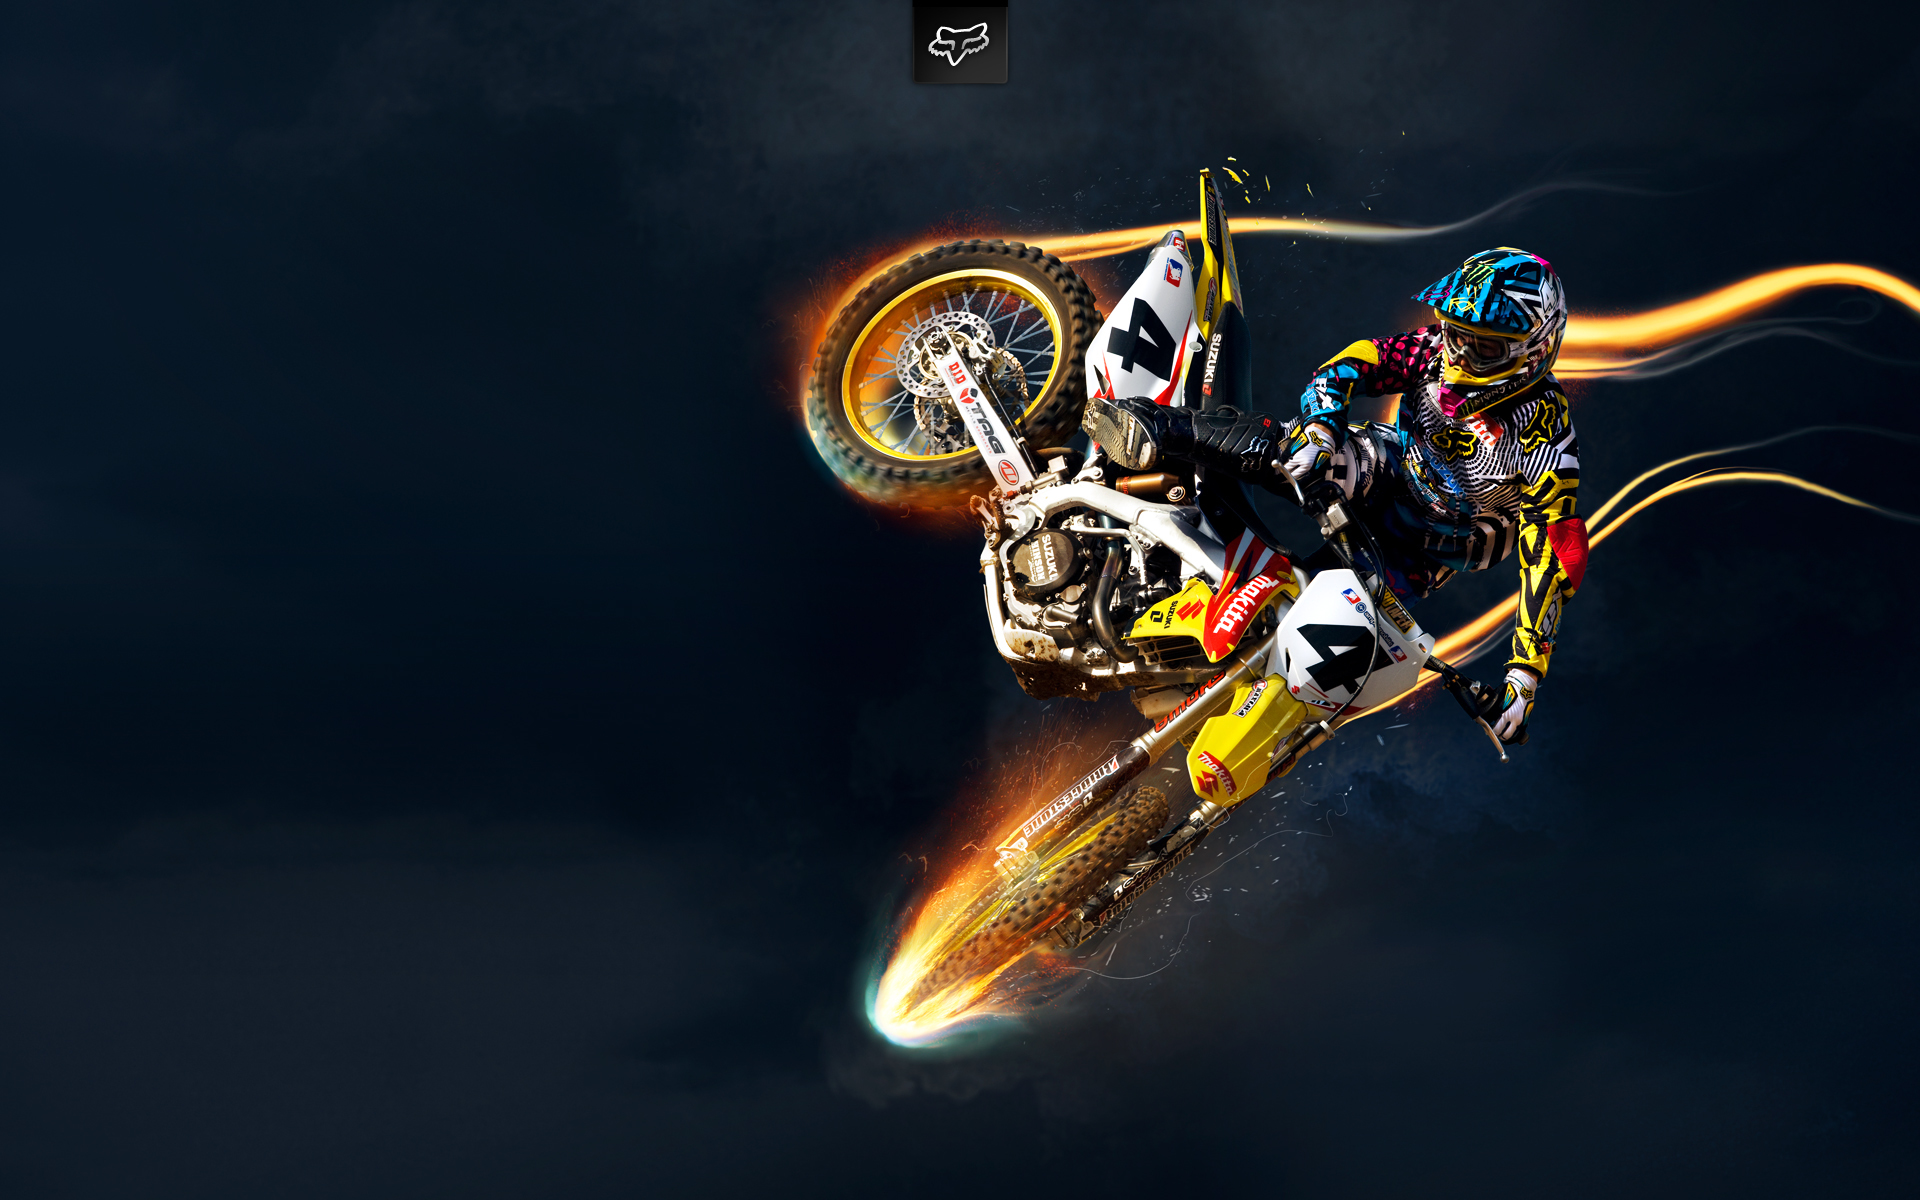 Suzuki Bike Stunts HD Bikes 4k Wallpapers Images Backgrounds